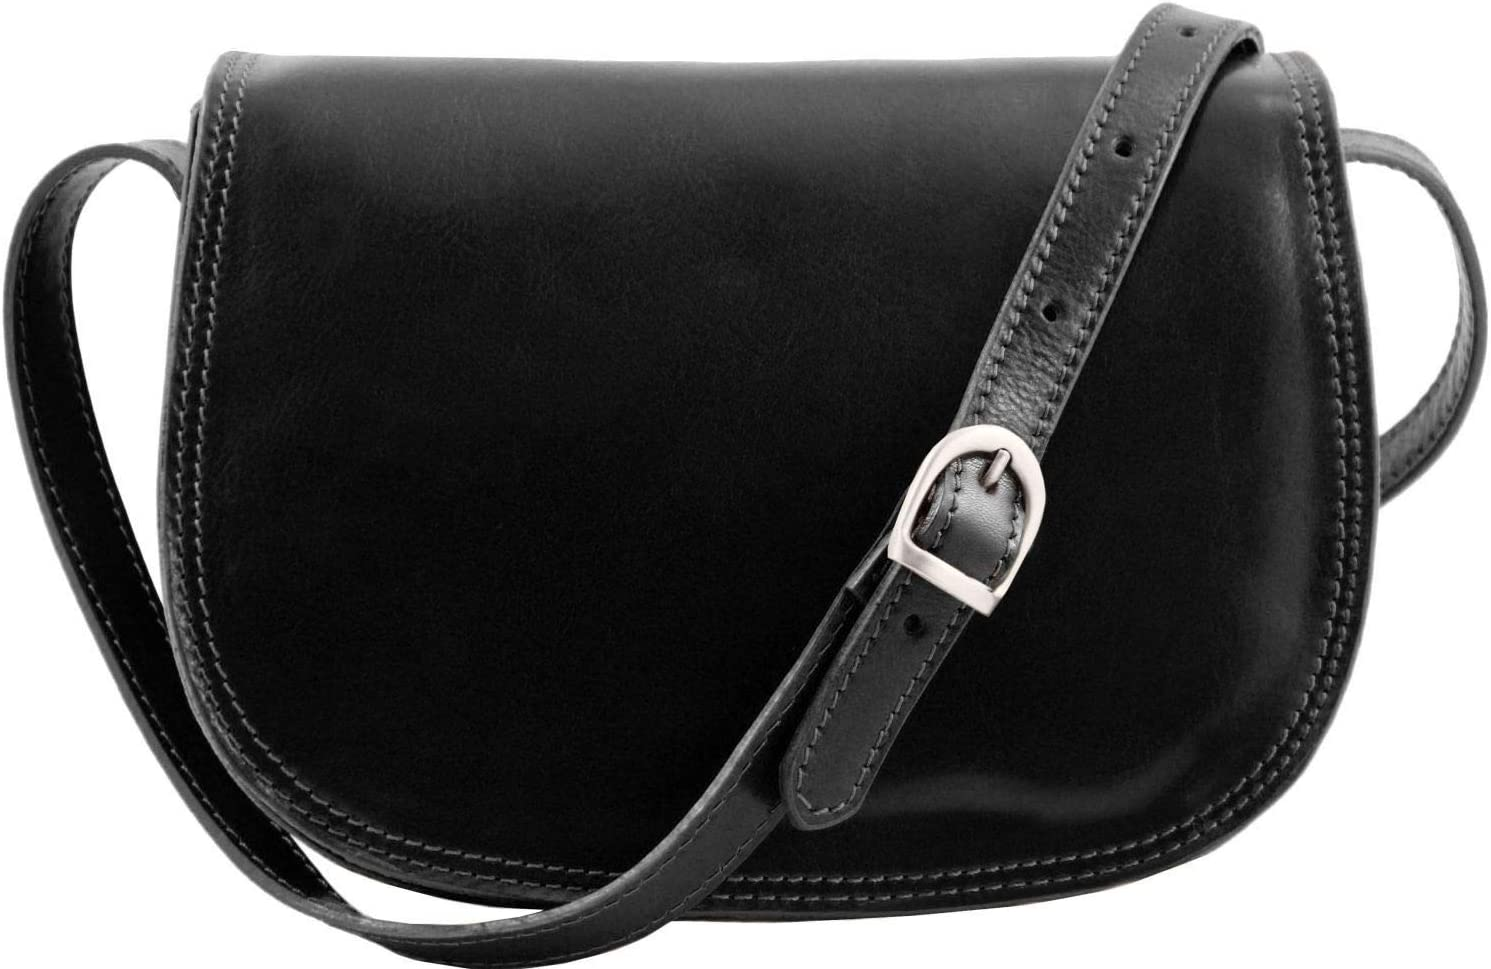 Tuscany Leather Fixed price for sale Isabella Lady Black leather bag Clearance SALE Limited time